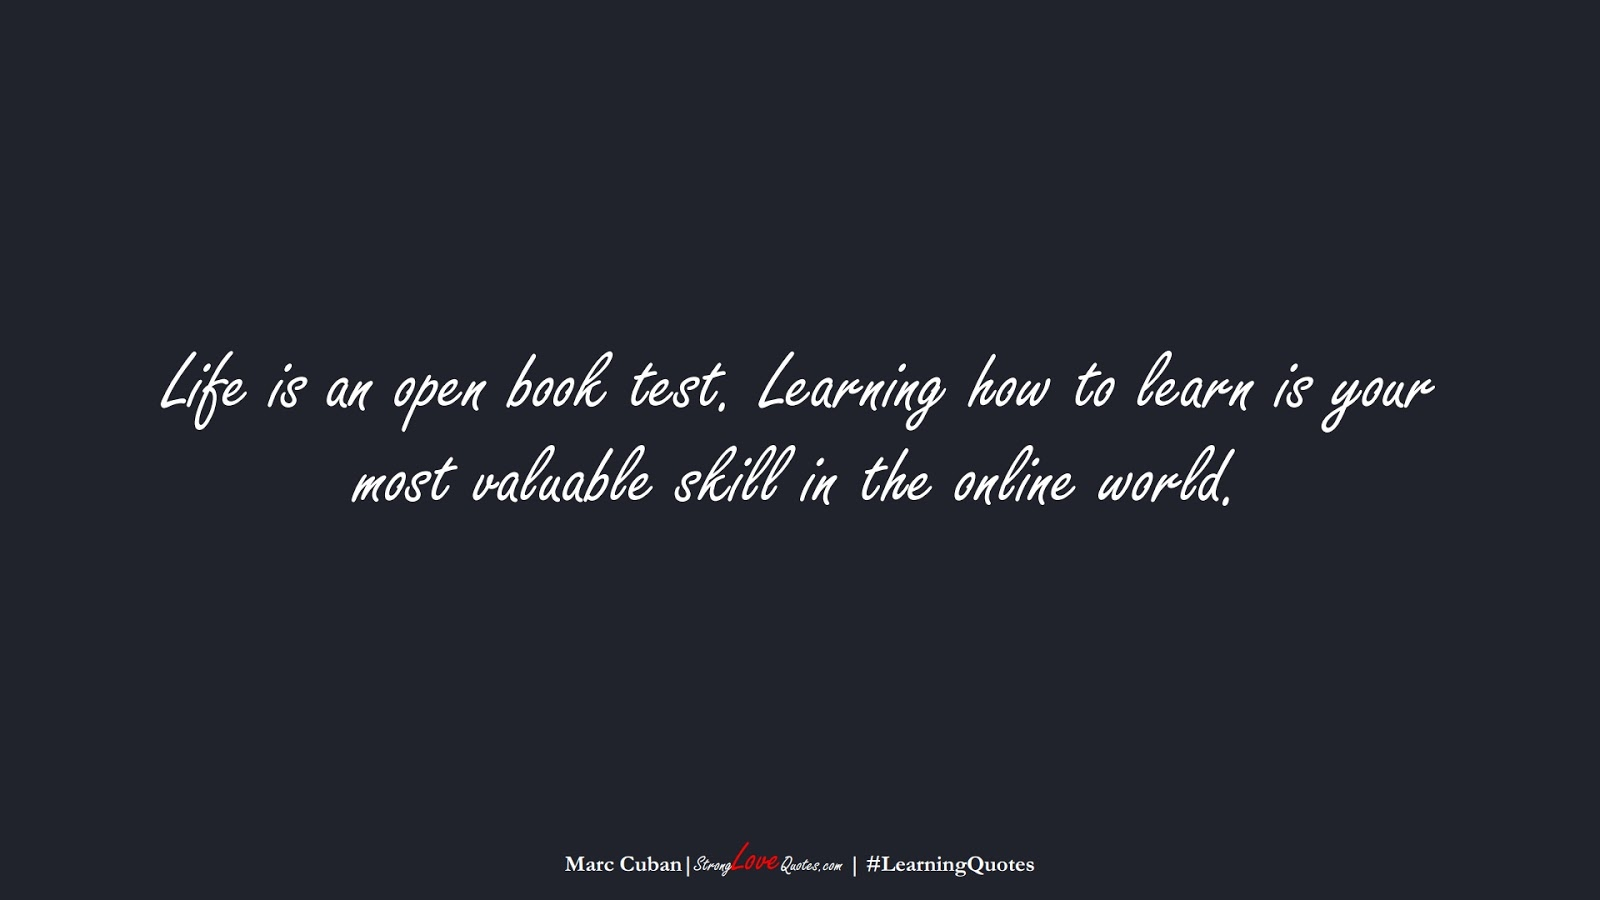 Life is an open book test. Learning how to learn is your most valuable skill in the online world. (Marc Cuban);  #LearningQuotes